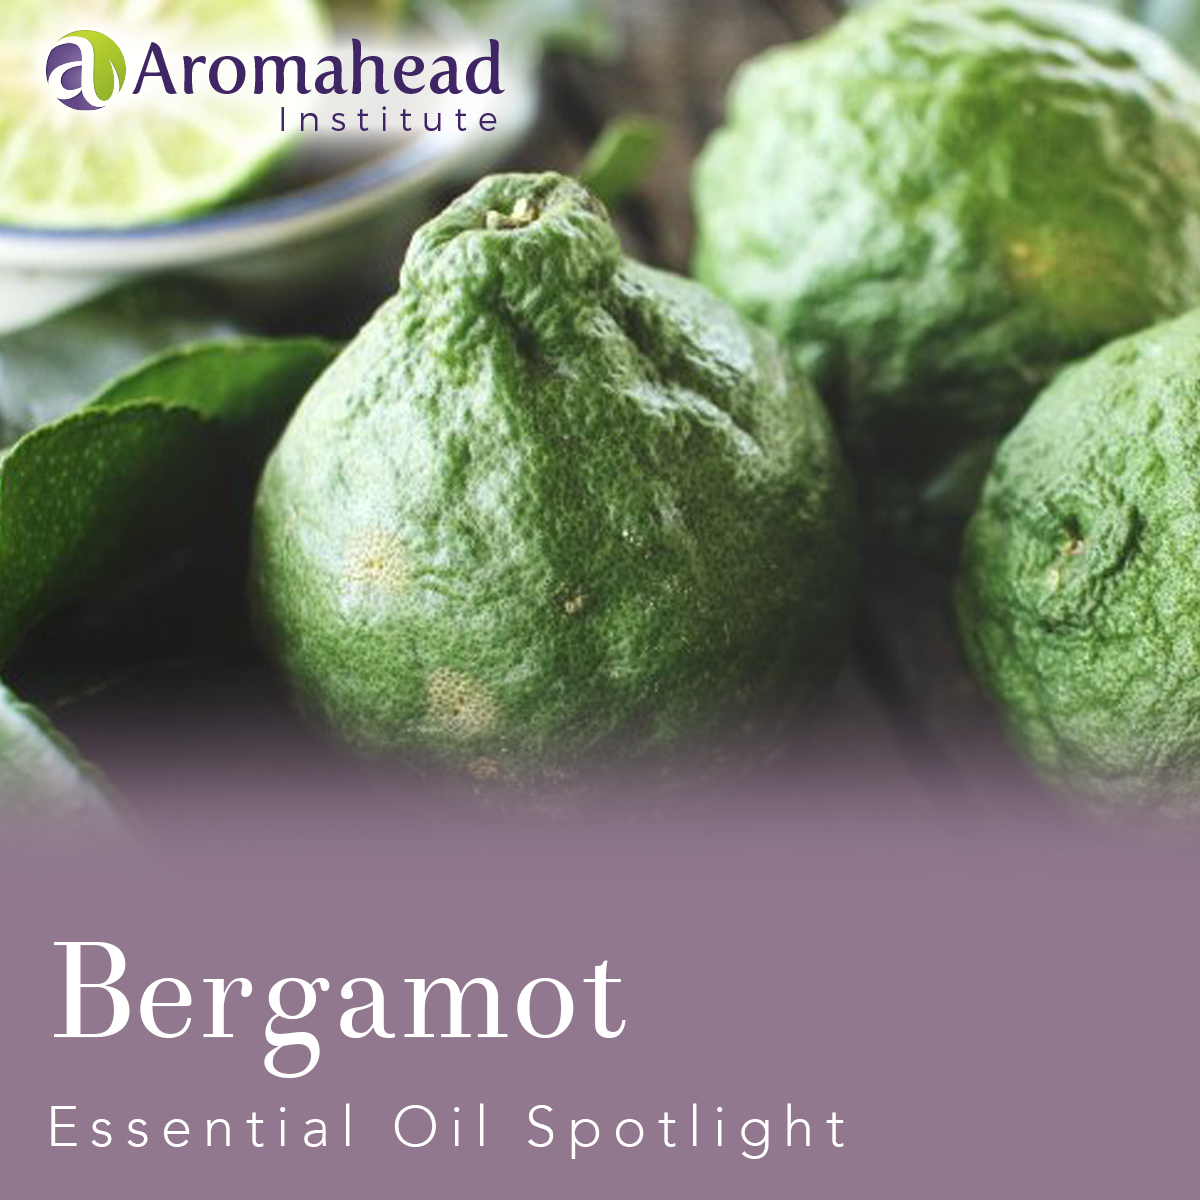 Blog - Oct 1 2018 - Bergamot  Essential  Oil  Spotlight - Blog Title - 1200 x 1200 -V1